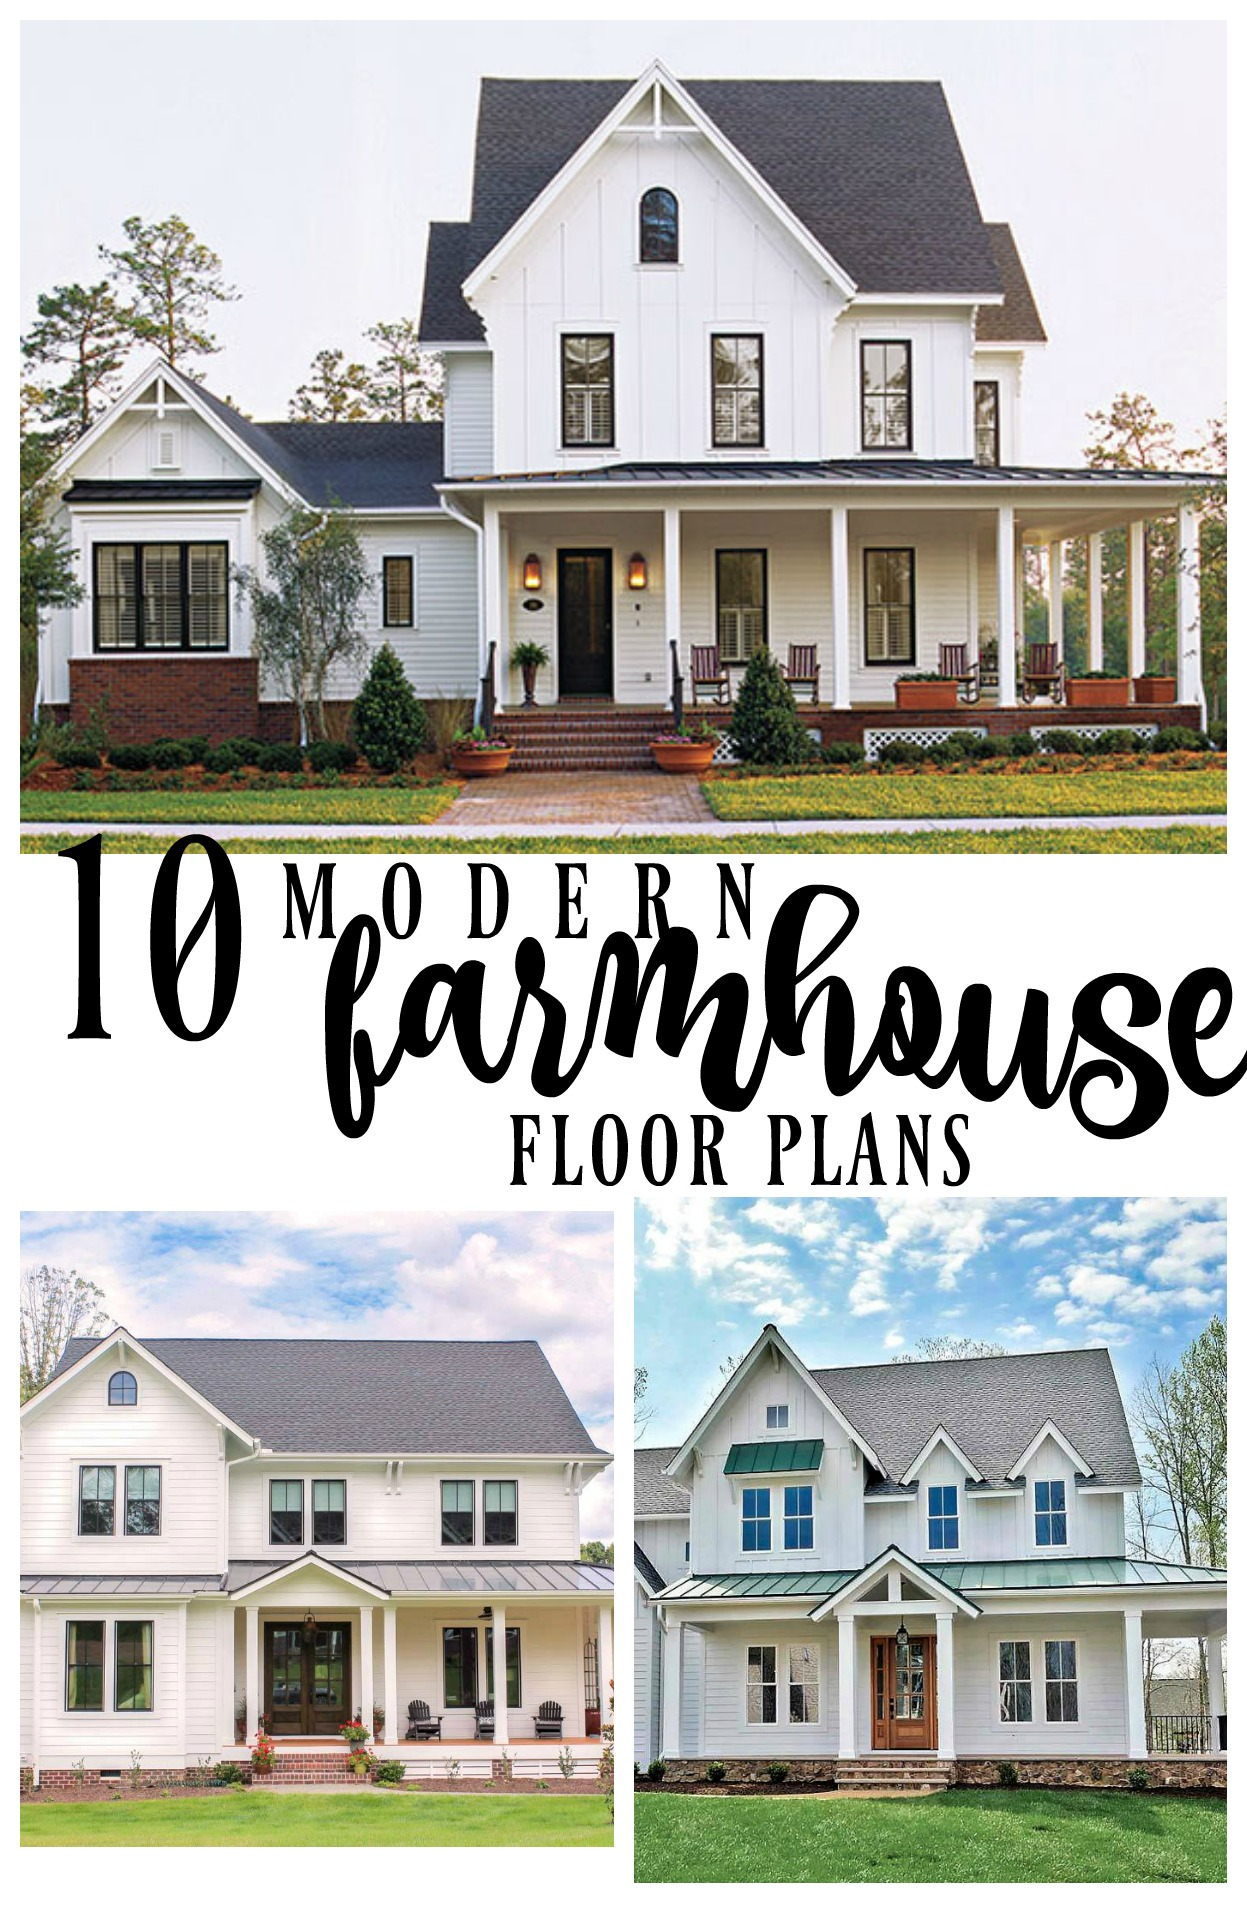 10 modern farmhouse floor plans i love rooms for rent blog for House plans farmhouse modern